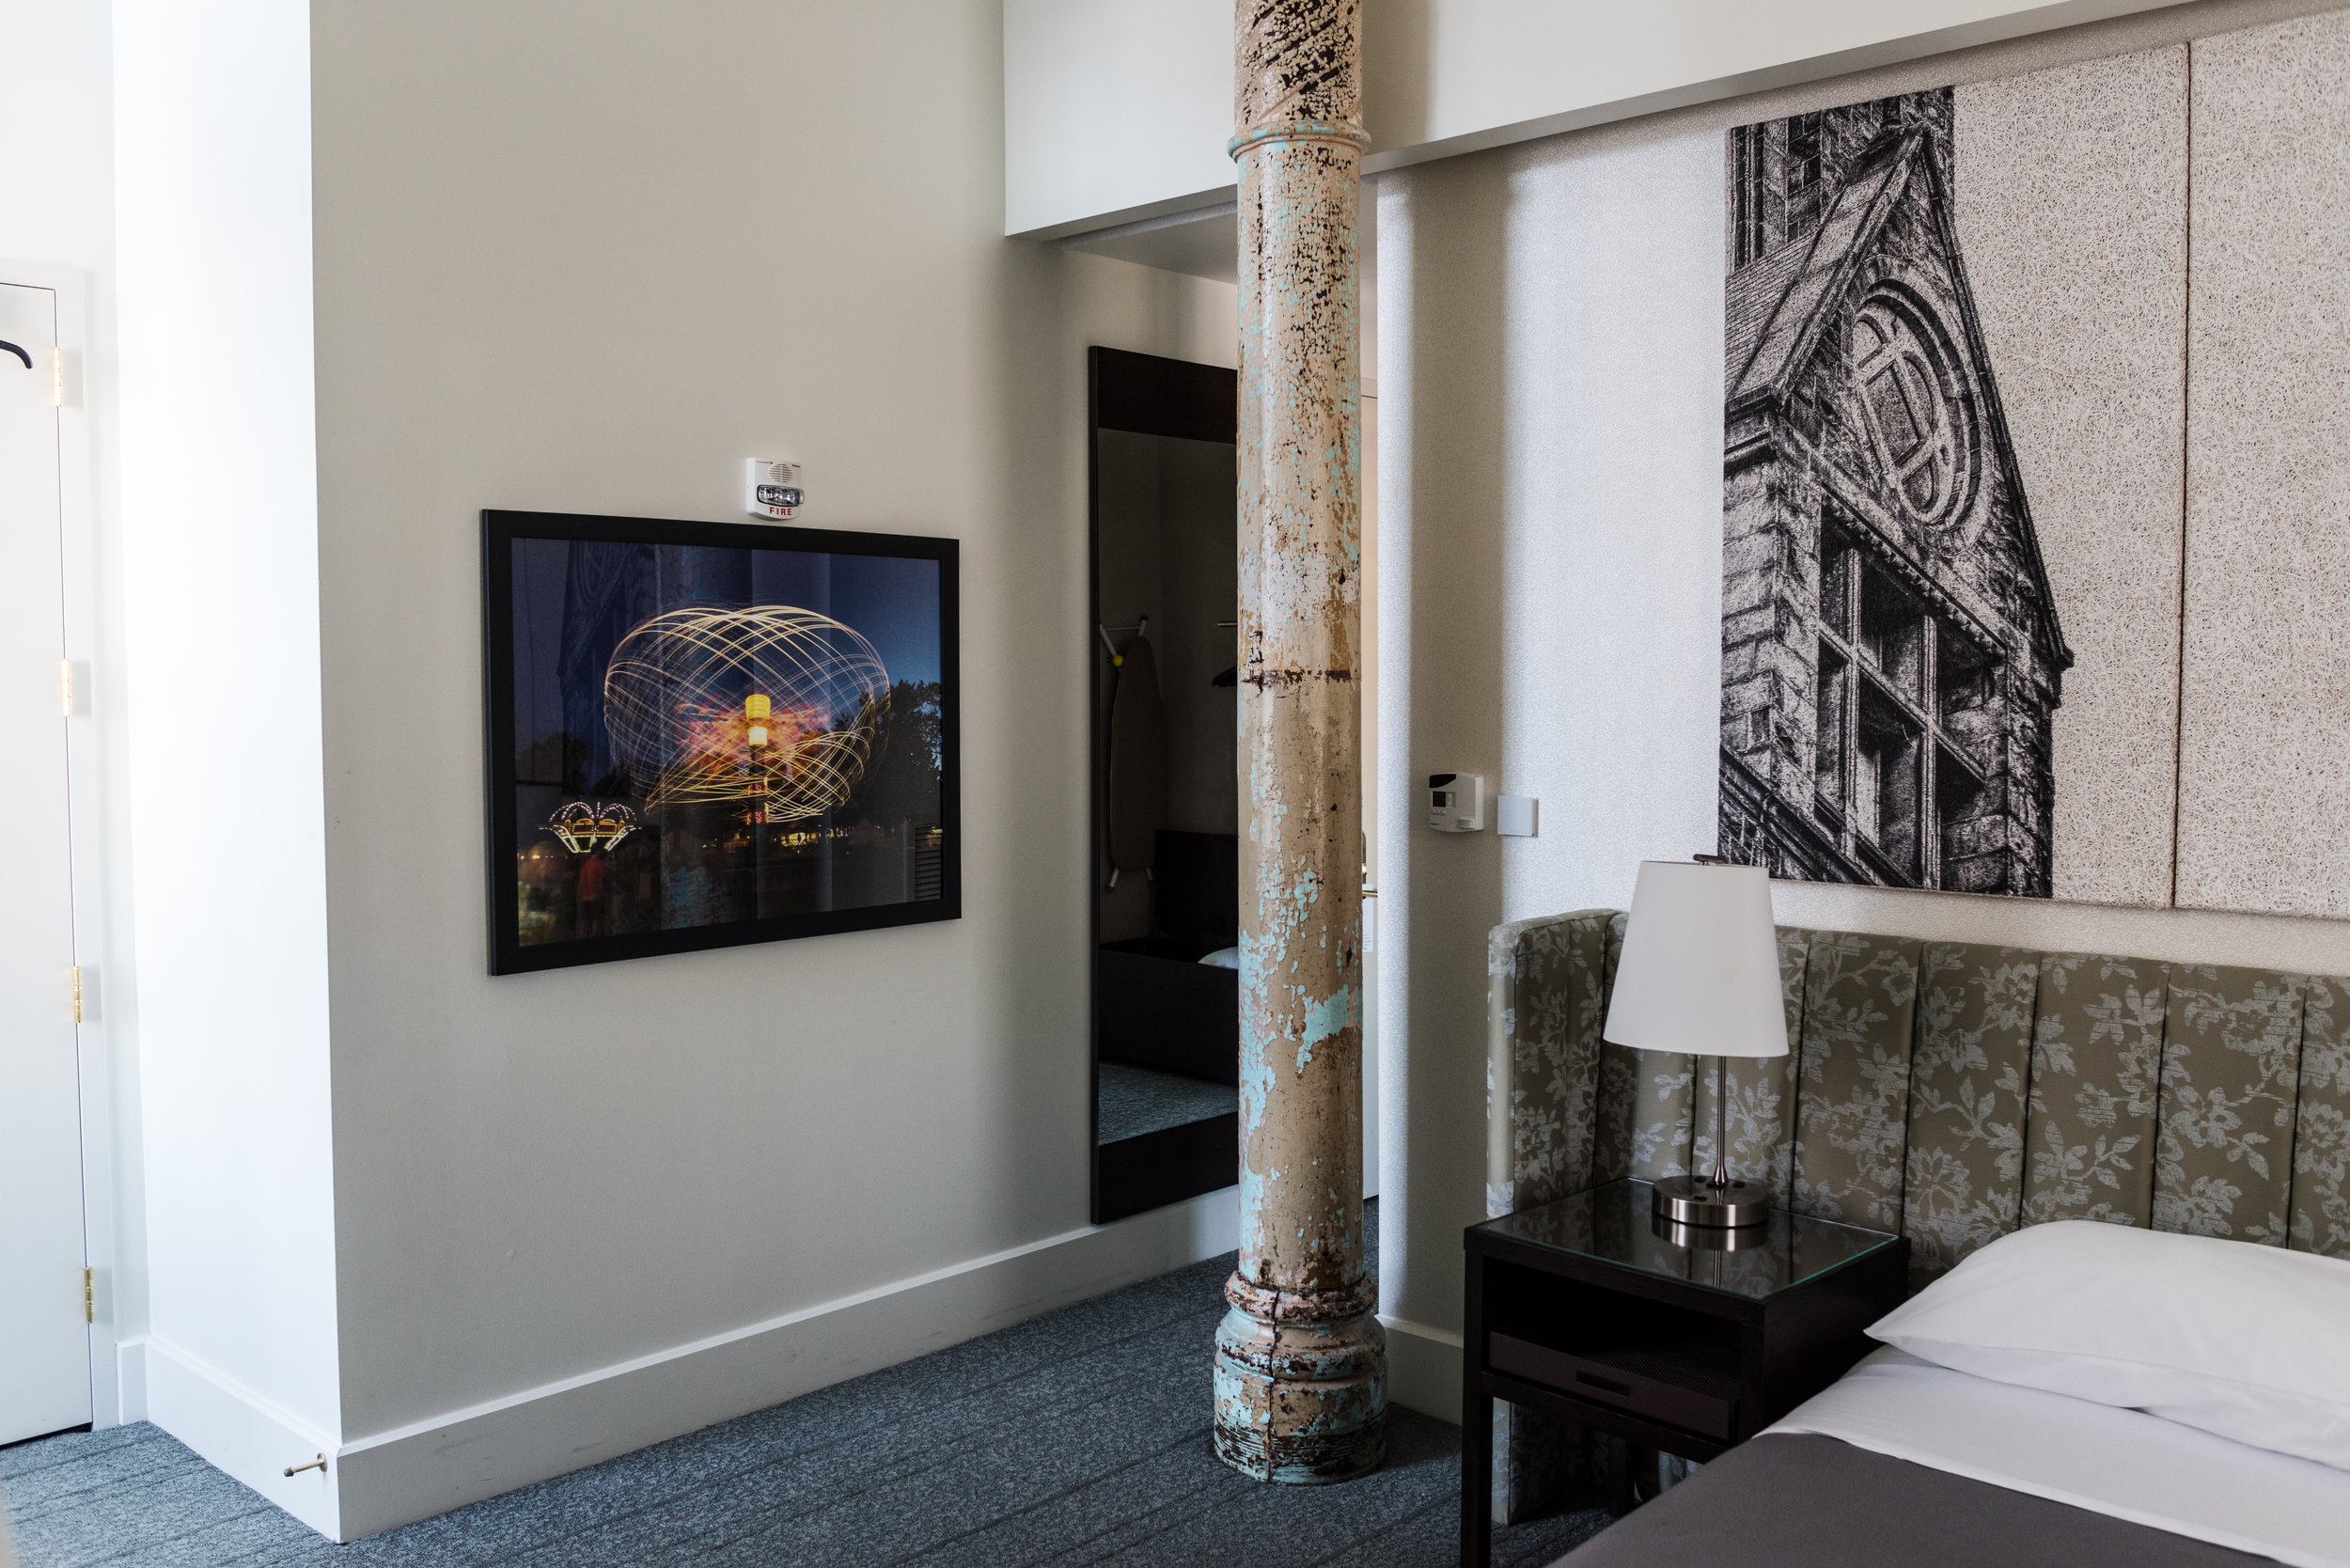 HOTEL HENRY - Curated by Indiewalls